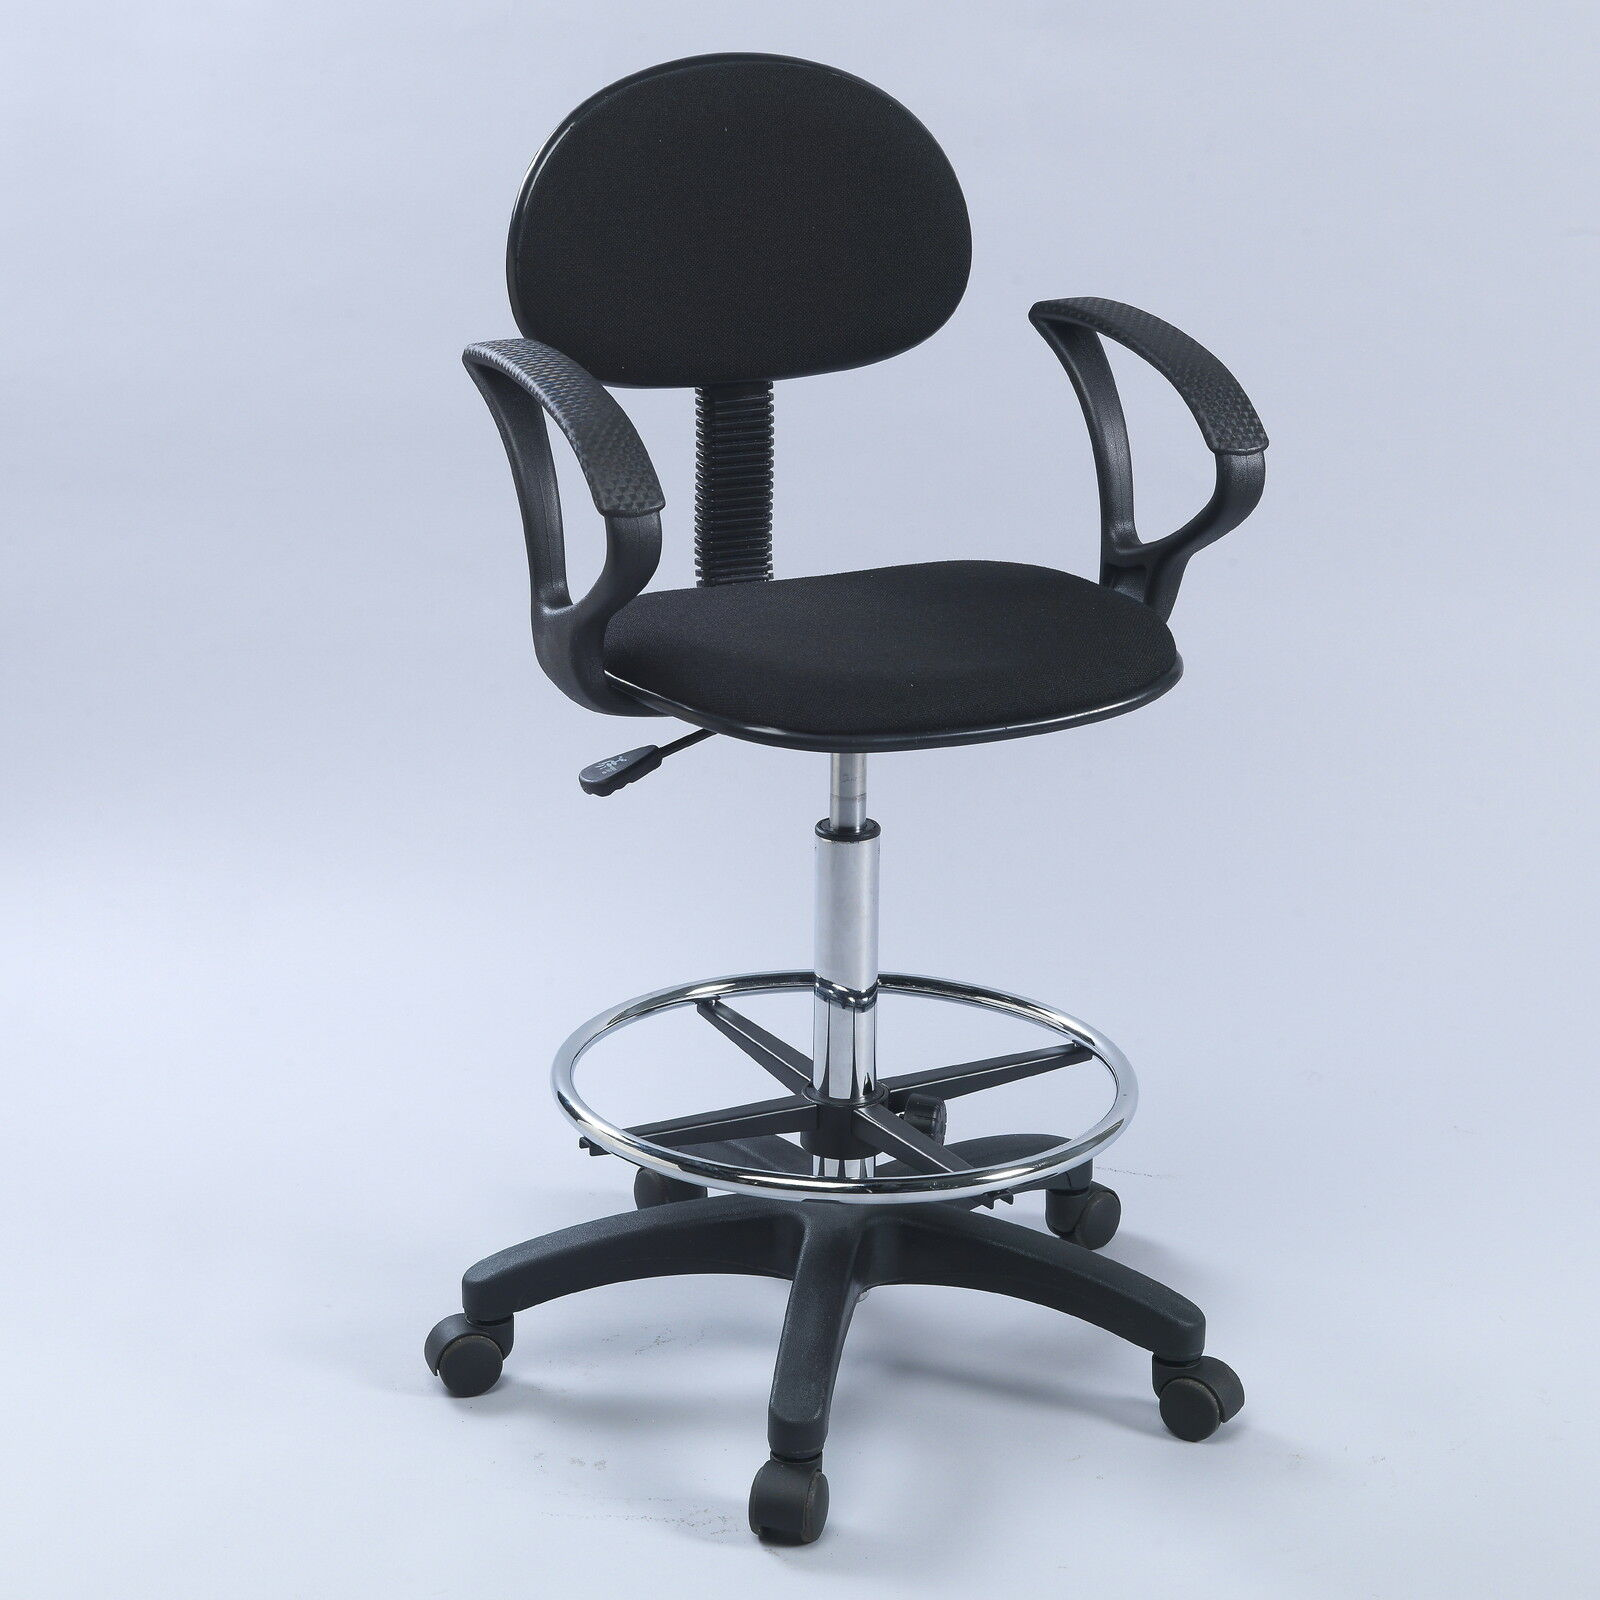 Counter Drafting Height Economy Office Chair W Arms Ebay